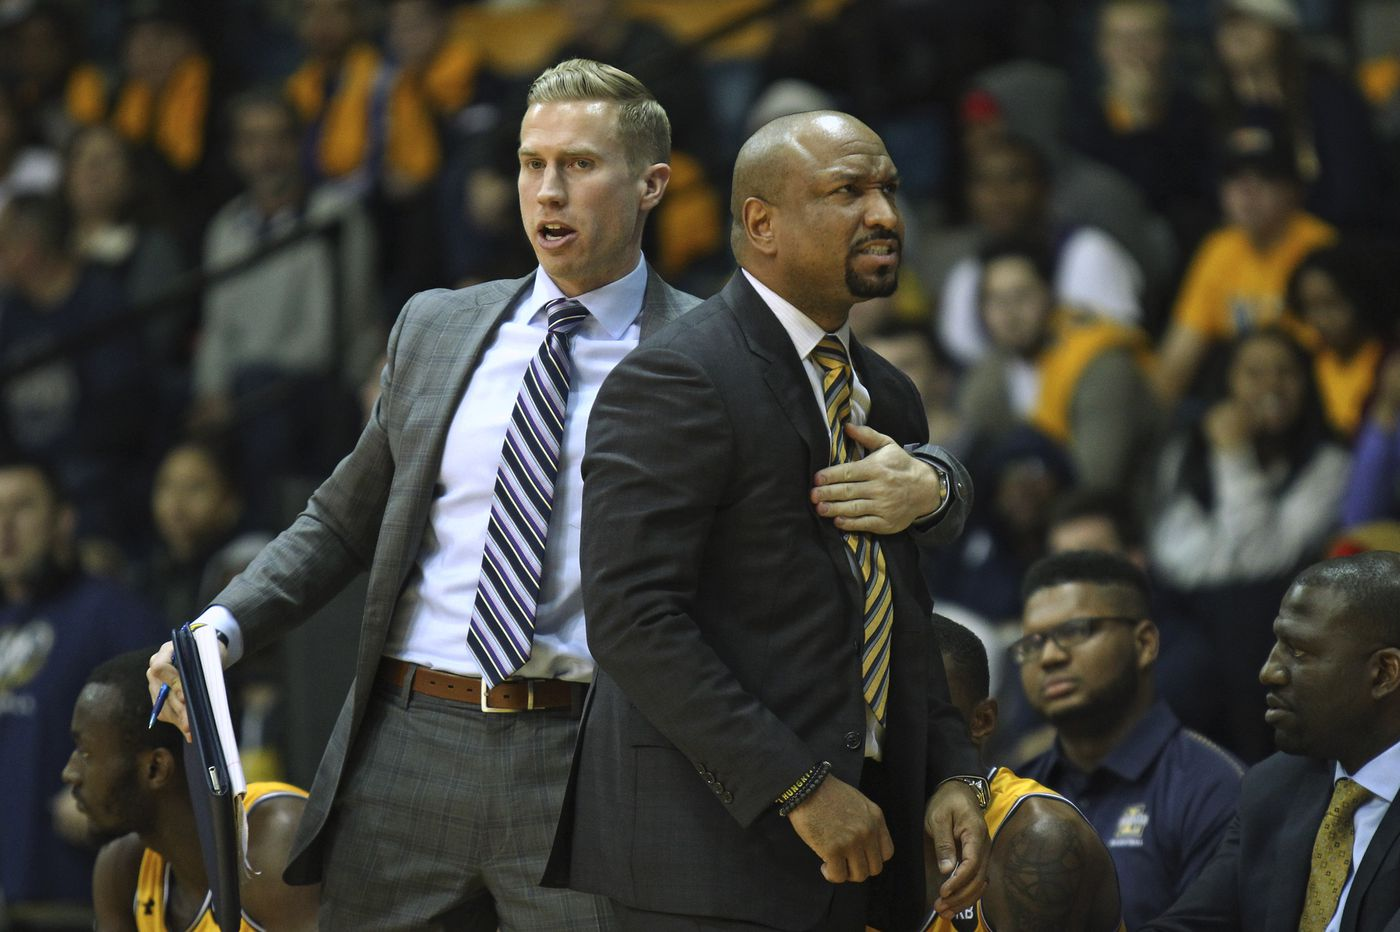 Kyle Griffin promoted to men's basketball associate head coach at La Salle